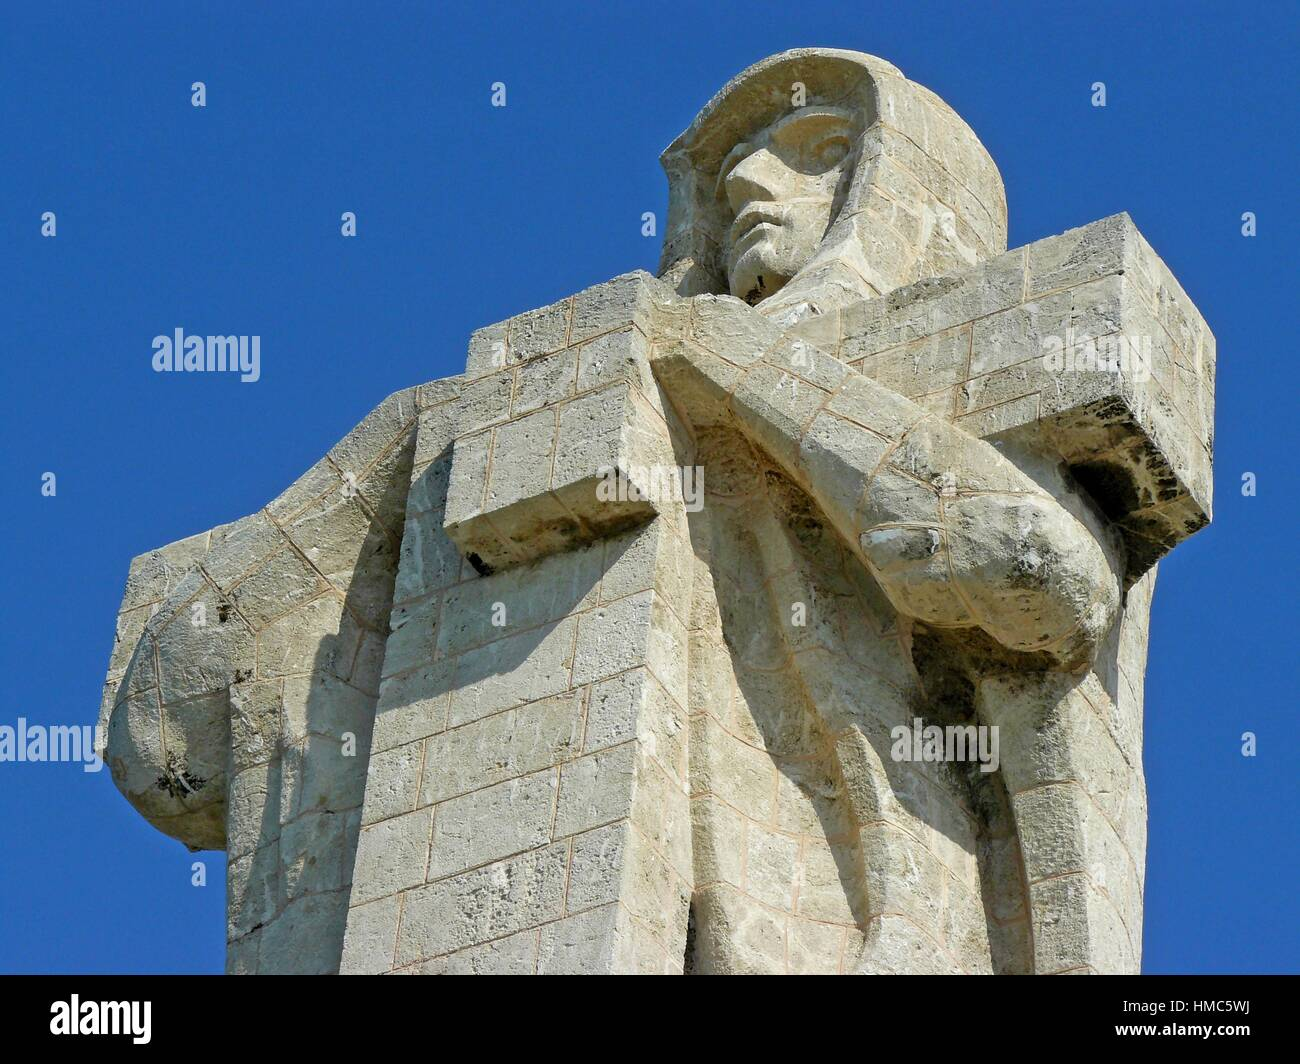 Huelva (Spain). Detail of the Monument of Faith discoverer near the city of Huelva. - Stock Image